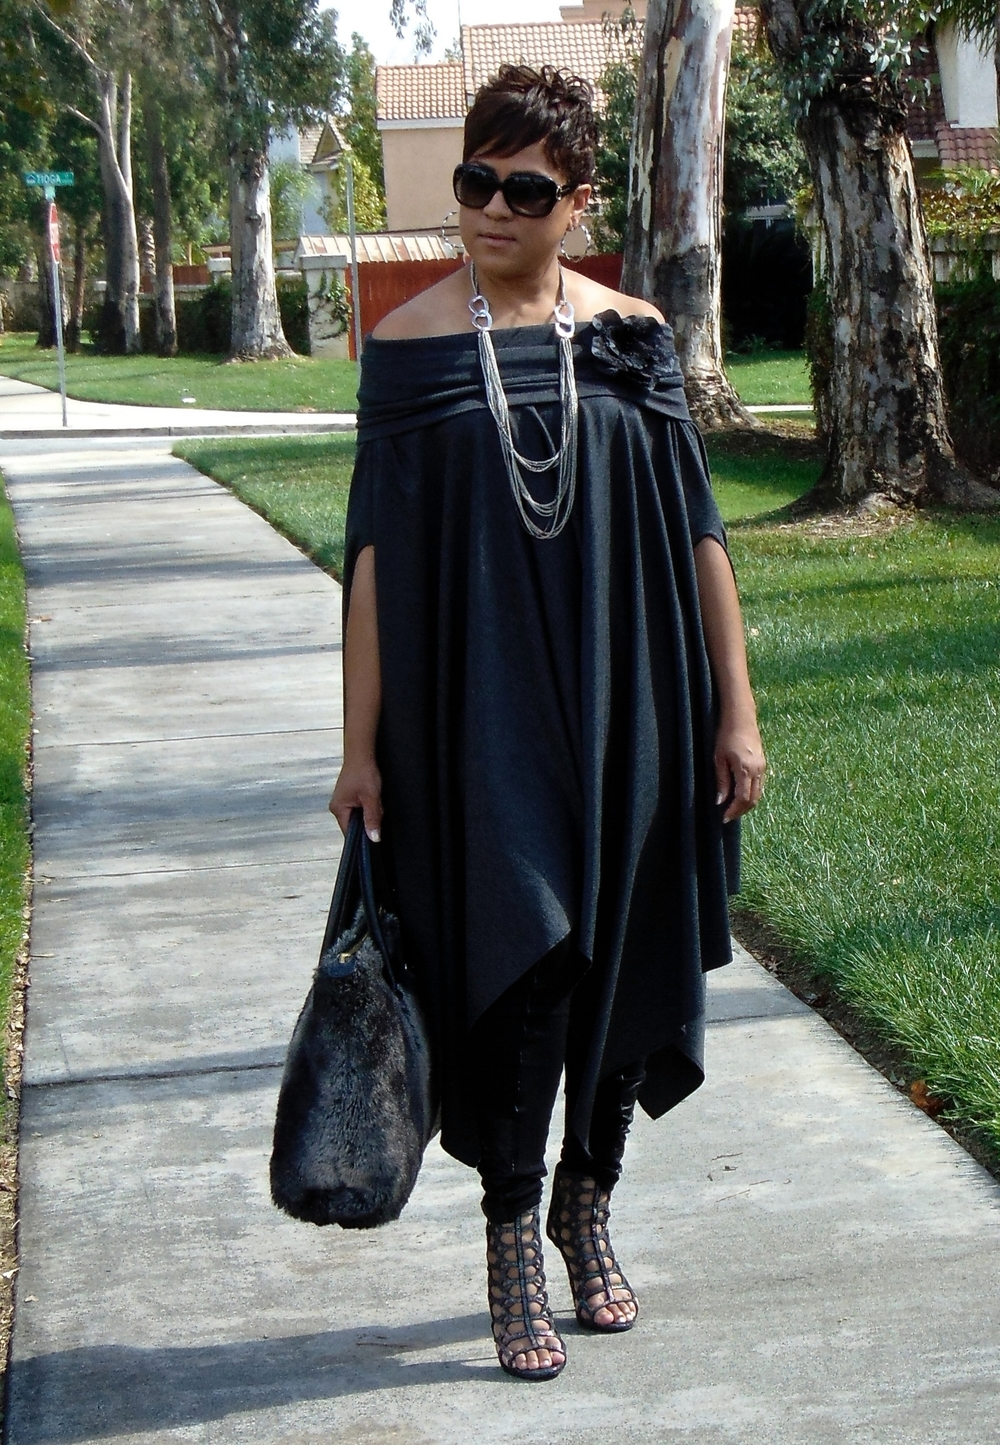 One of my favorite DIY projects Ever! This simple yet chic off the shoulder cape is not only fabulous but easy to make. See DIY & Video page for full details on how to recreate this look.